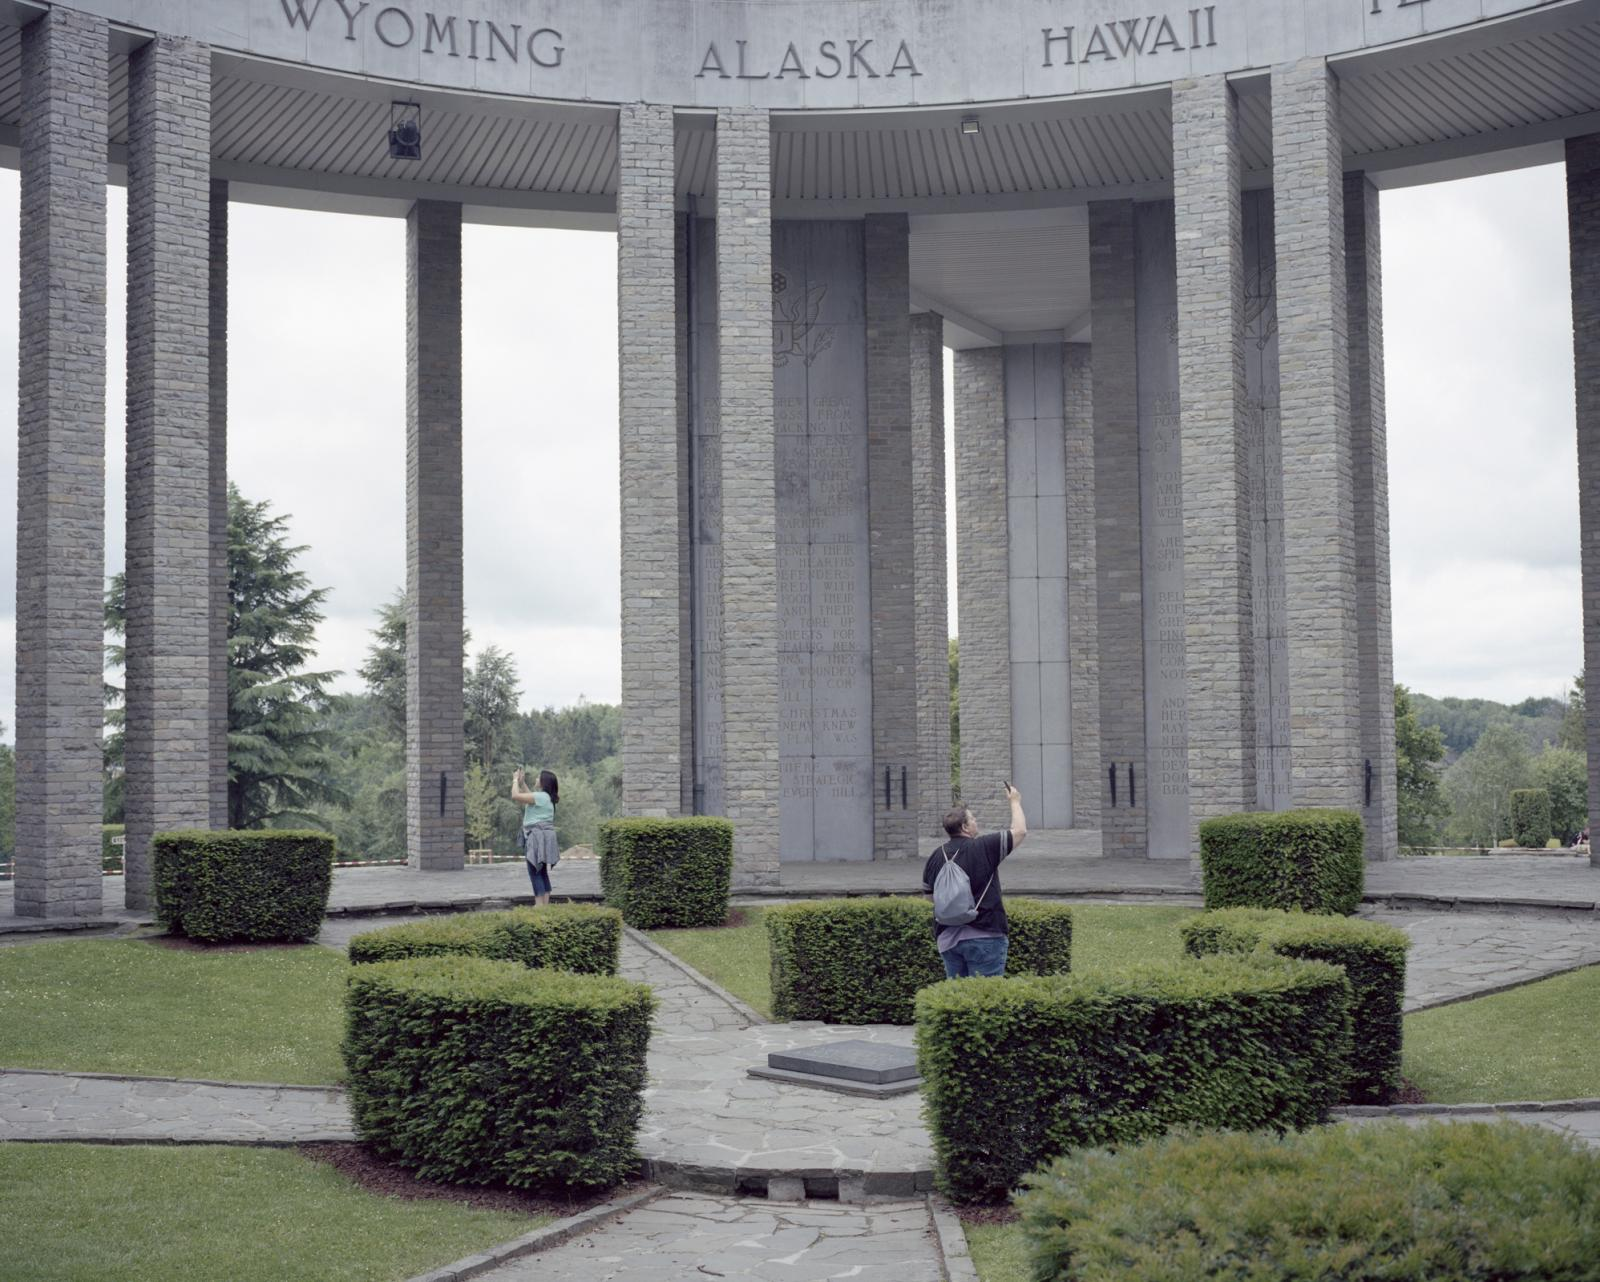 Belgium, Bastogne. American tourists shoot picture at the Mardasson Memorial that commemorate the Battle of the Bulge happened during the Second World War in which between 63000 and 98000 German soldiers and 89500 American soldiers were killed, wounded, missing or captured.